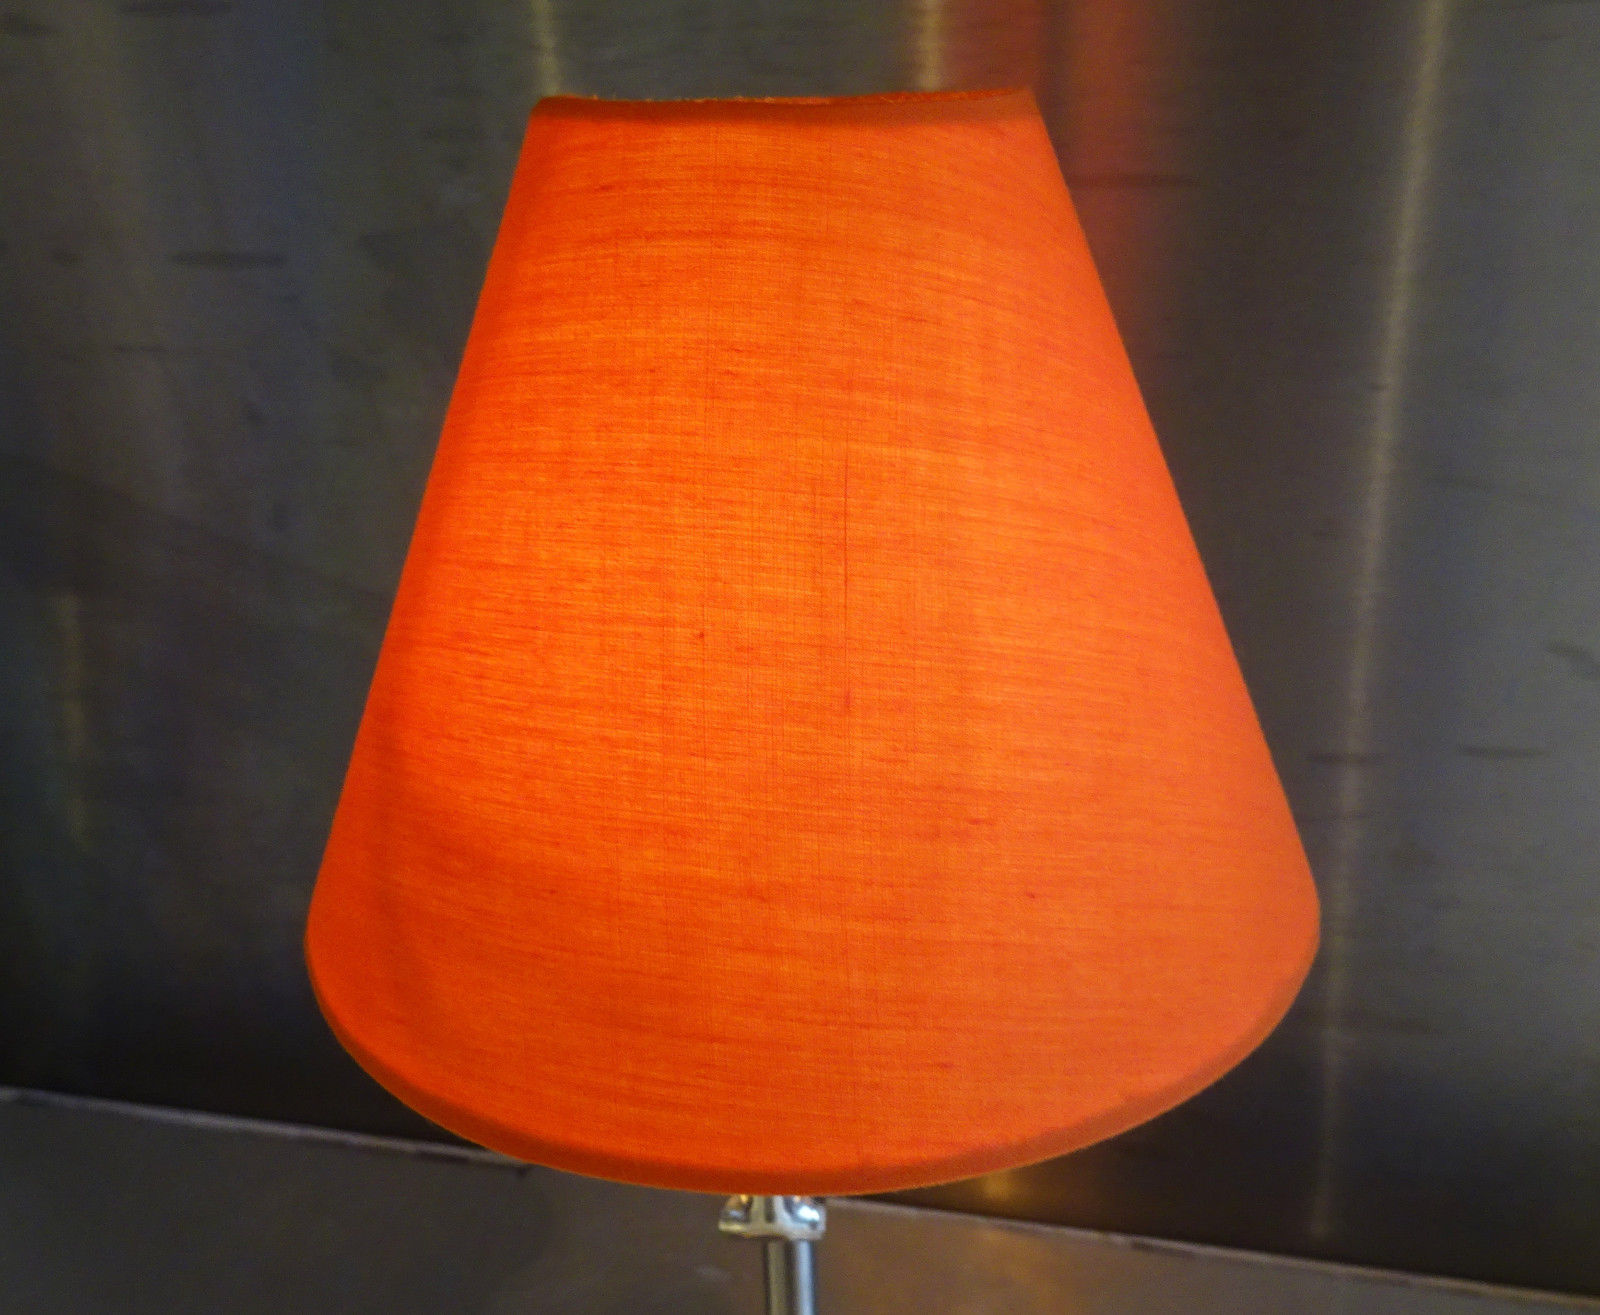 Candle Wall Lamp Shades : CANDLE LAMPSHADE CLIP-ON CHANDELIER WALL LIGHT PENDANT SHADE ORANGE RETRO KITSCH - Cheap ...